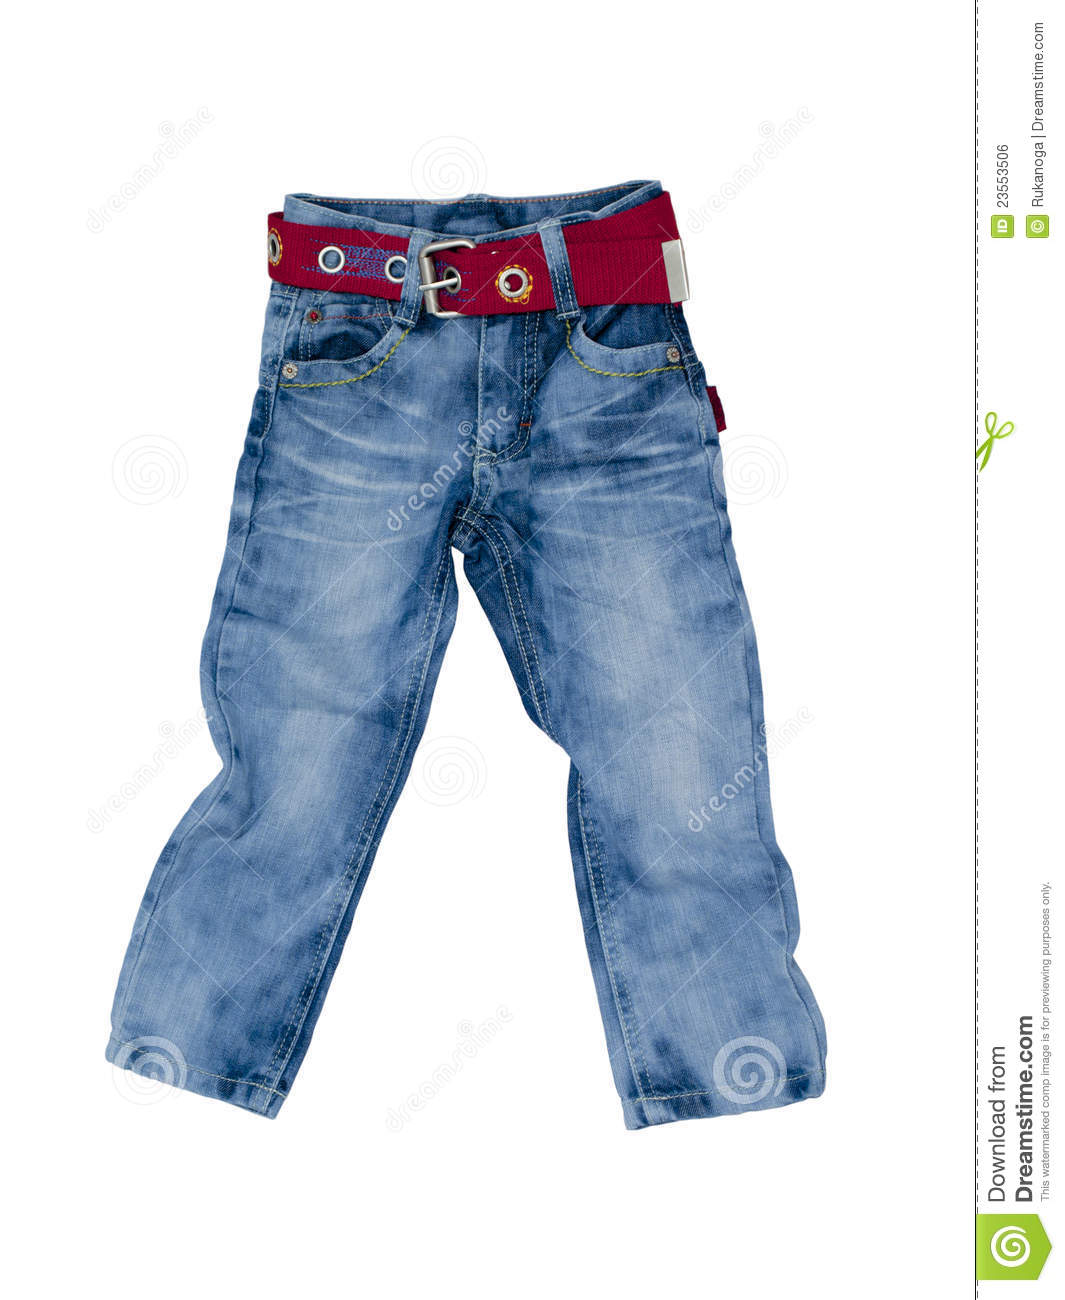 childrens jeans stock photo image of isolated child